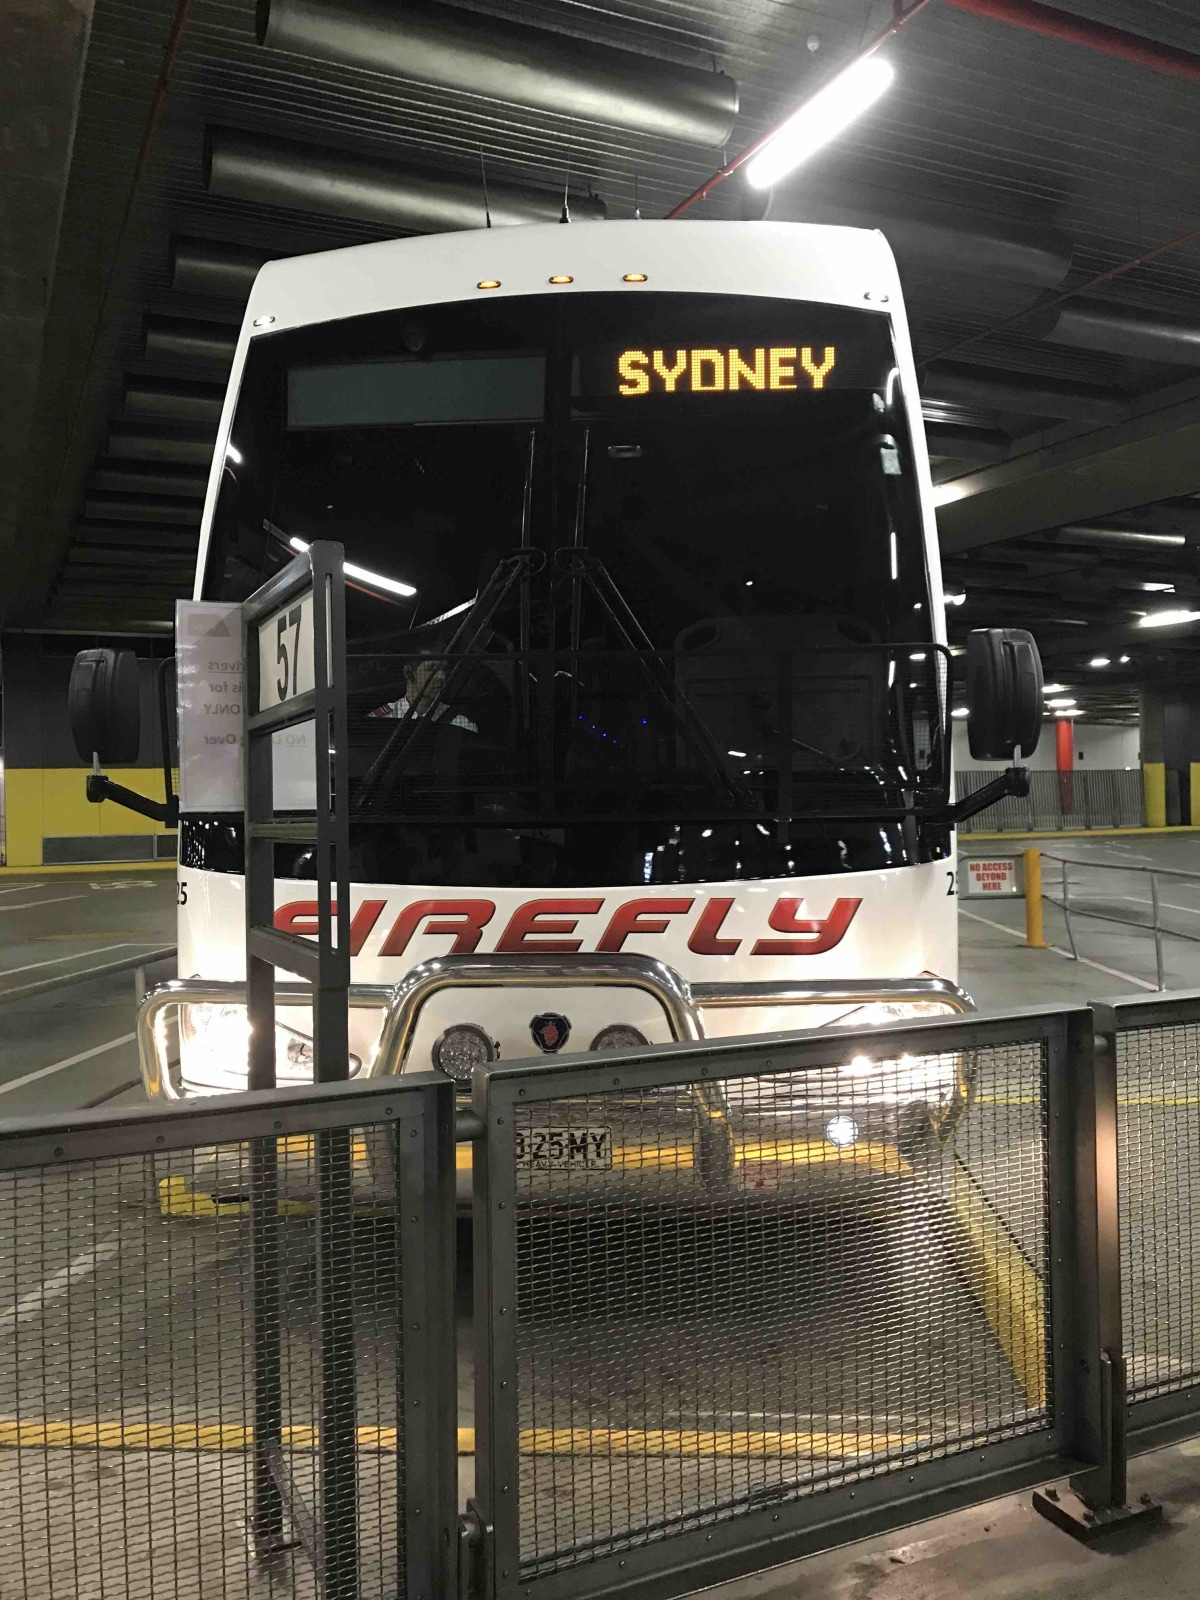 The bus we rode on from Melbournes to sydney